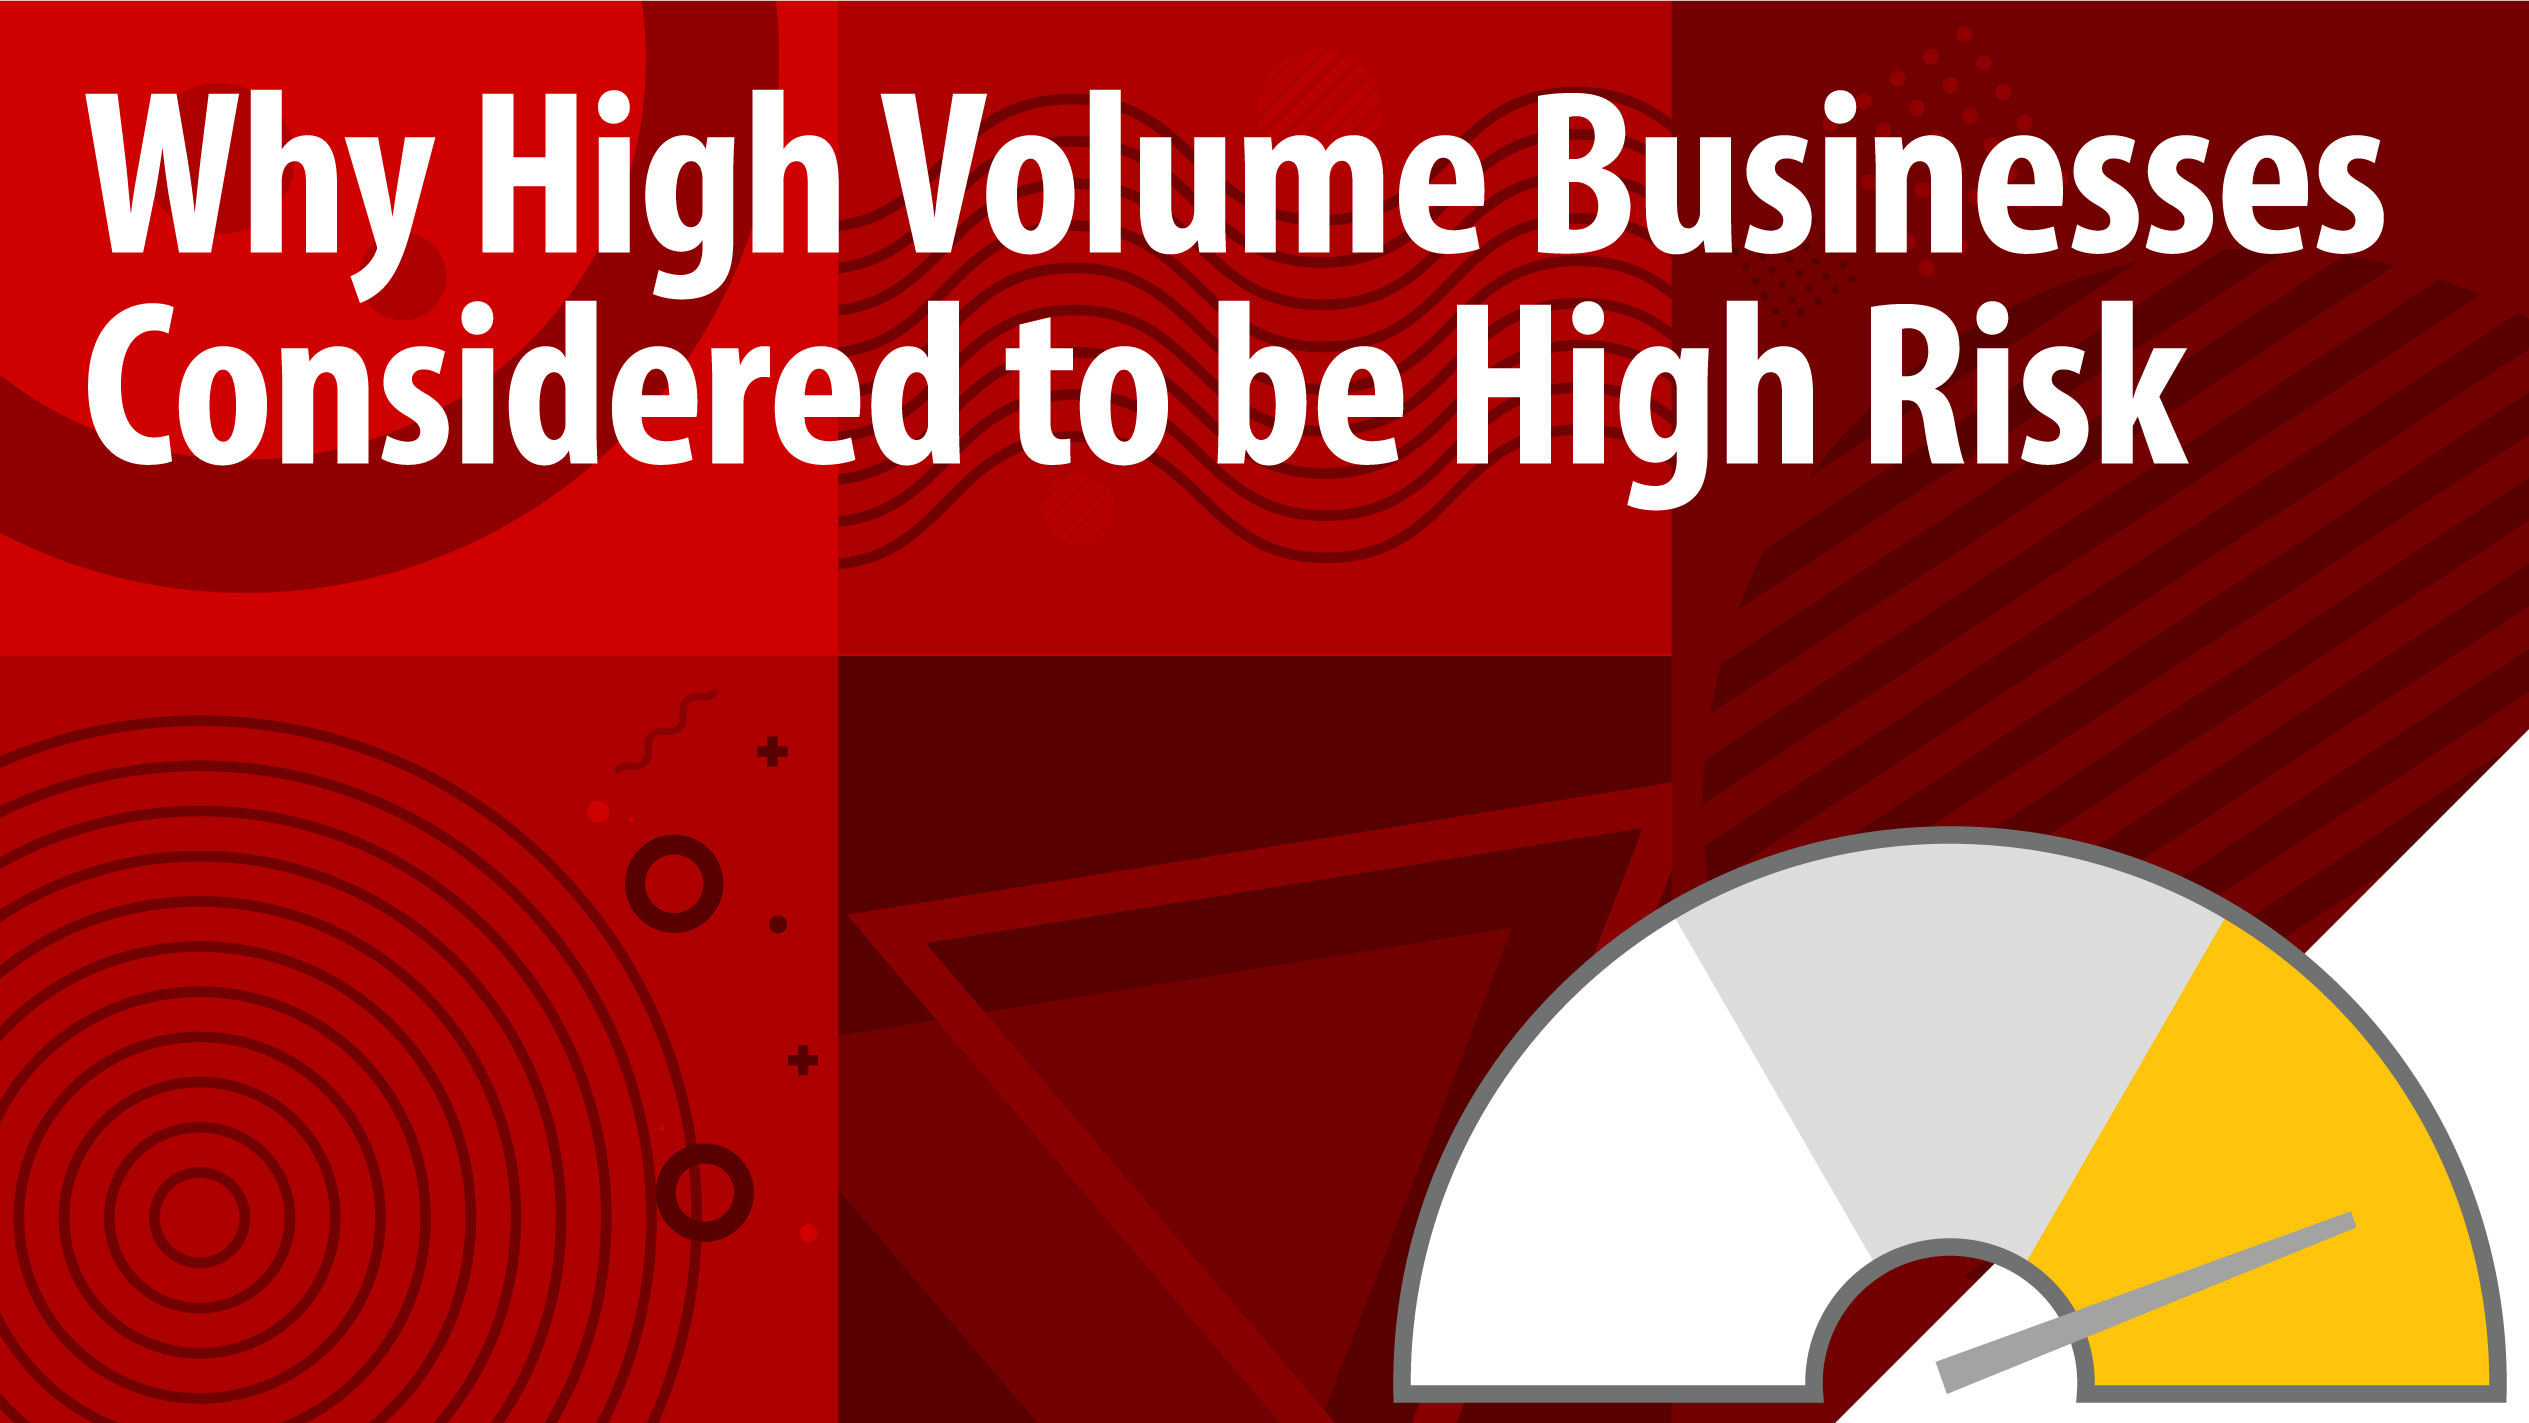 Why High Volume Businesses Considered to be High Risk